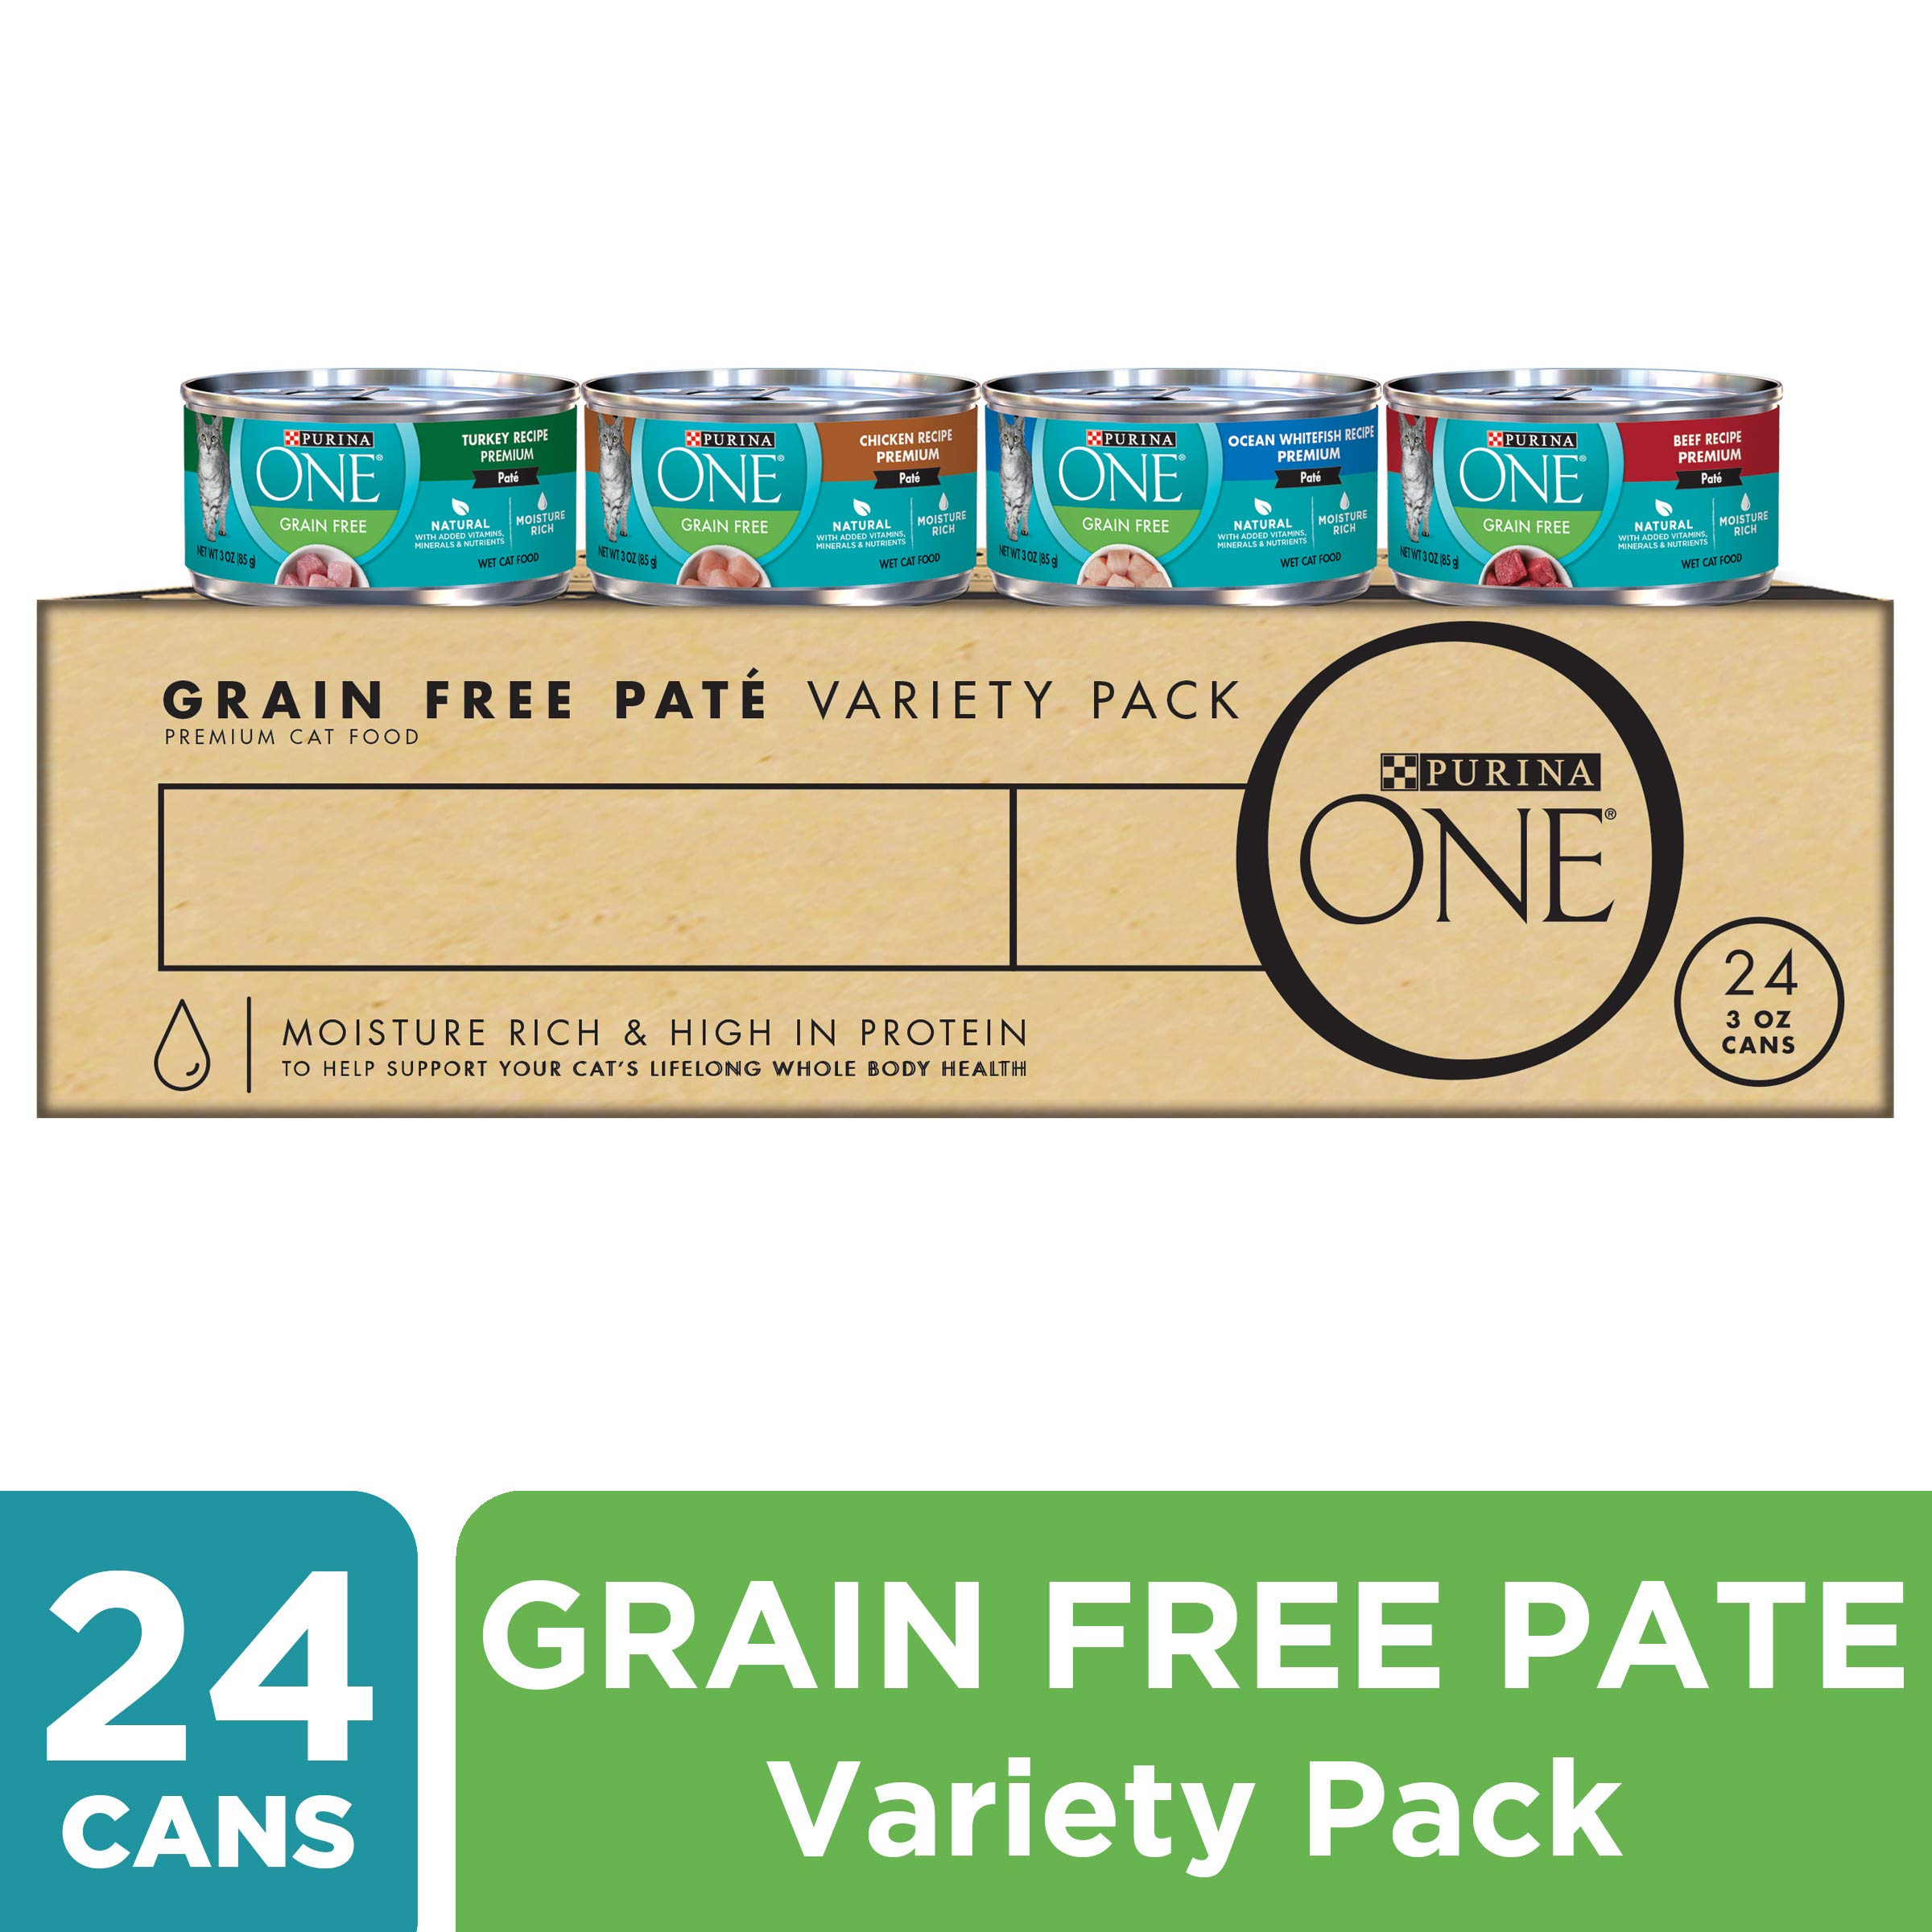 Purina ONE High Protein, Grain Free Pate Wet Cat Food Variety Pack, Grain Free Formula - (24) 3 oz. Cans by Purina ONE